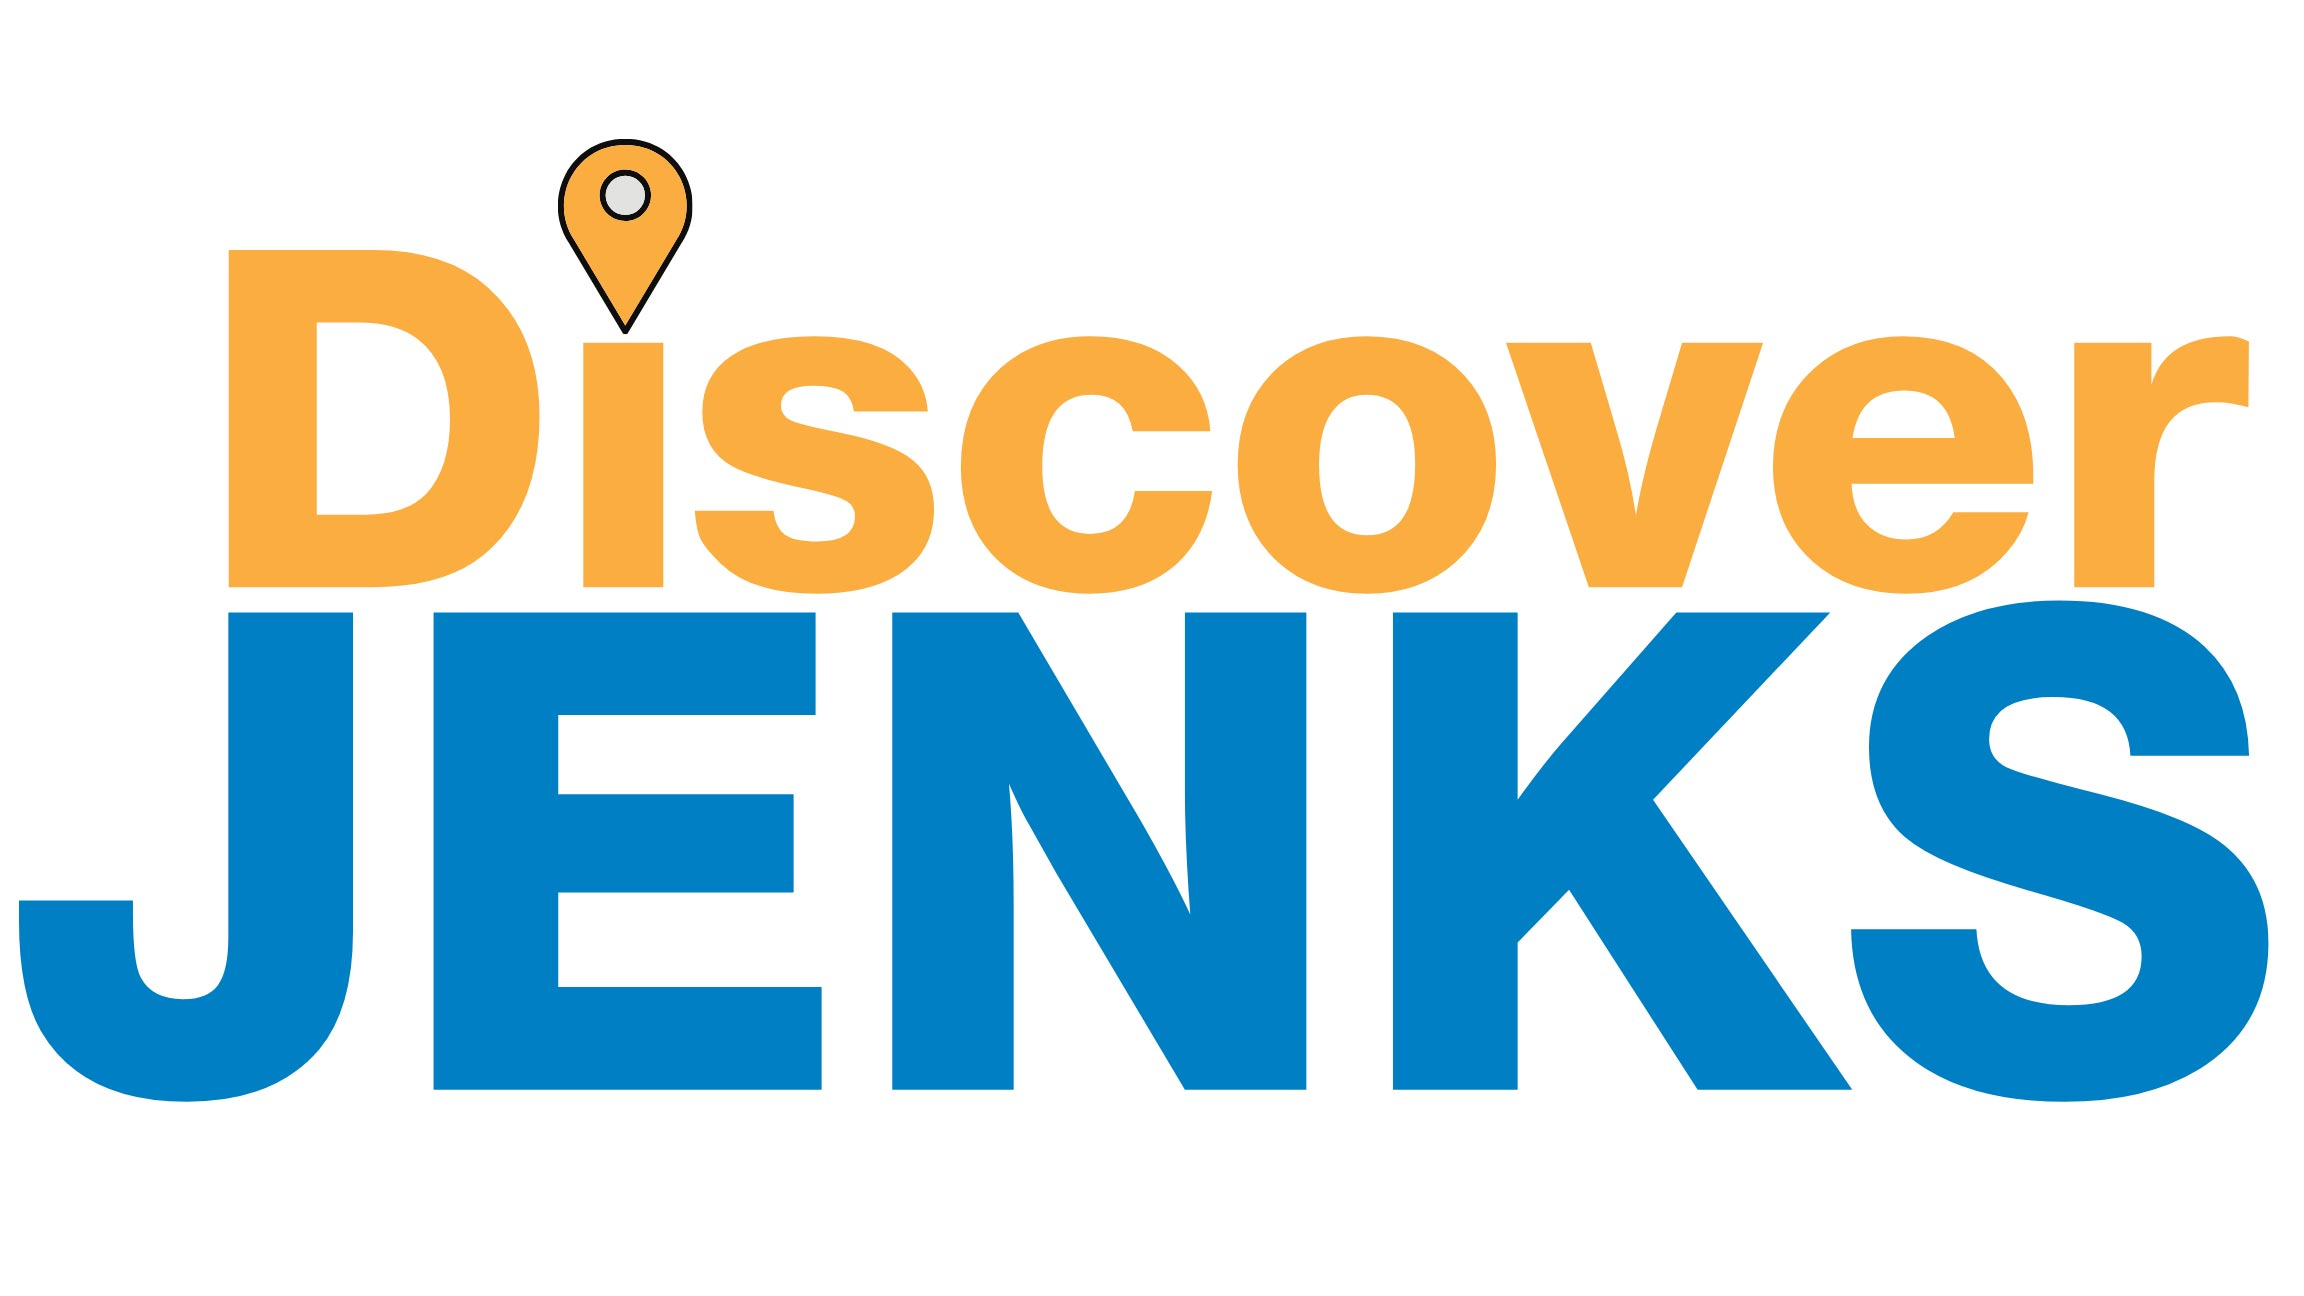 Discover Jenks